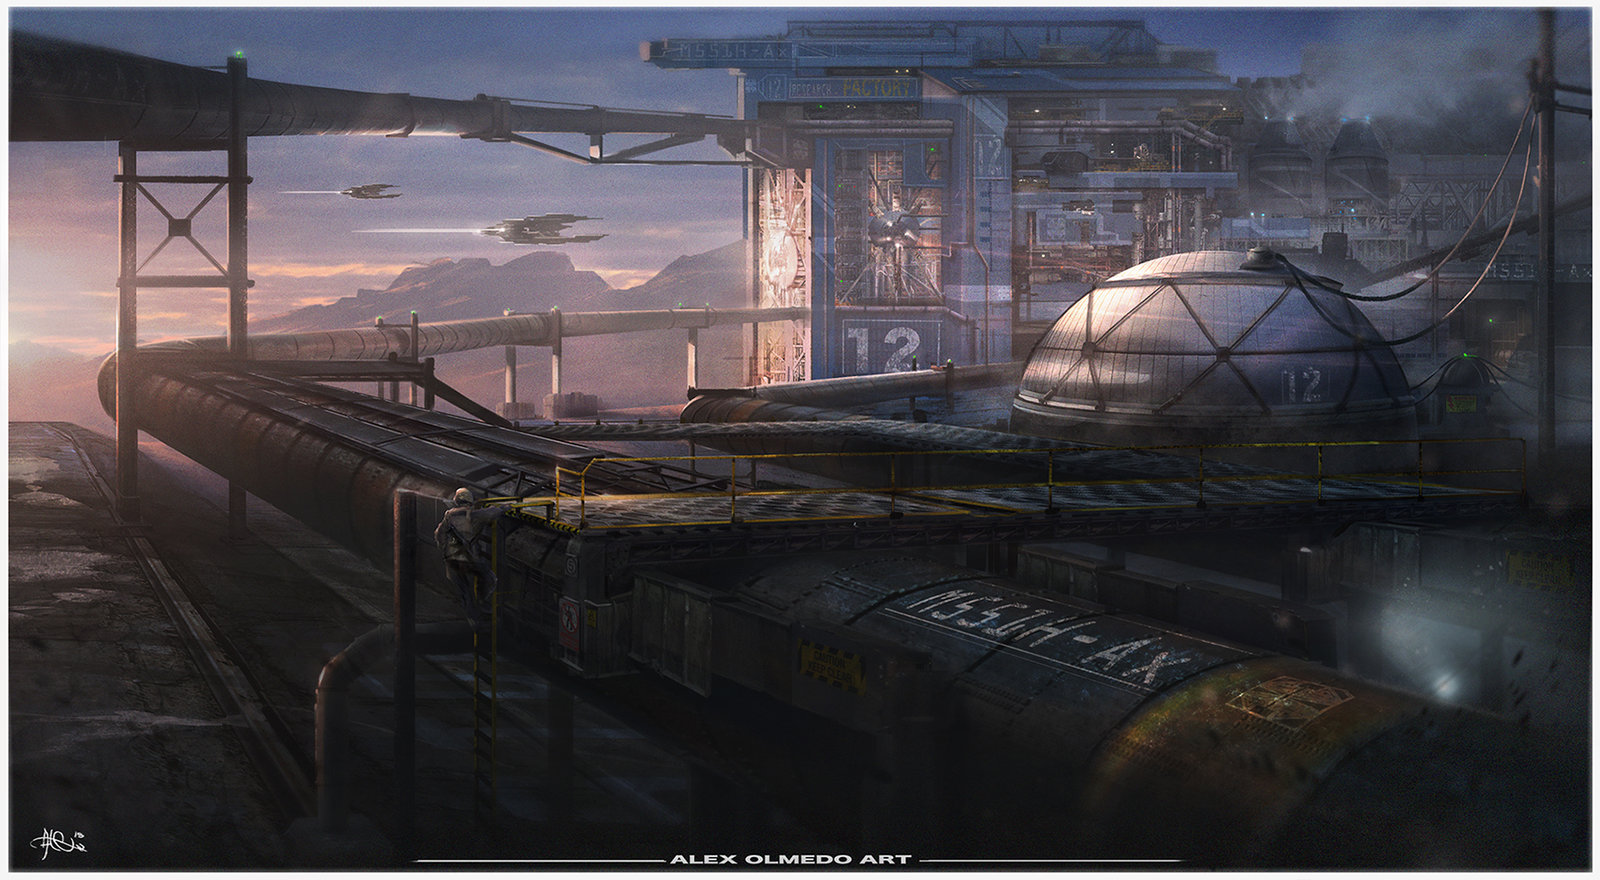 Future Research Factory